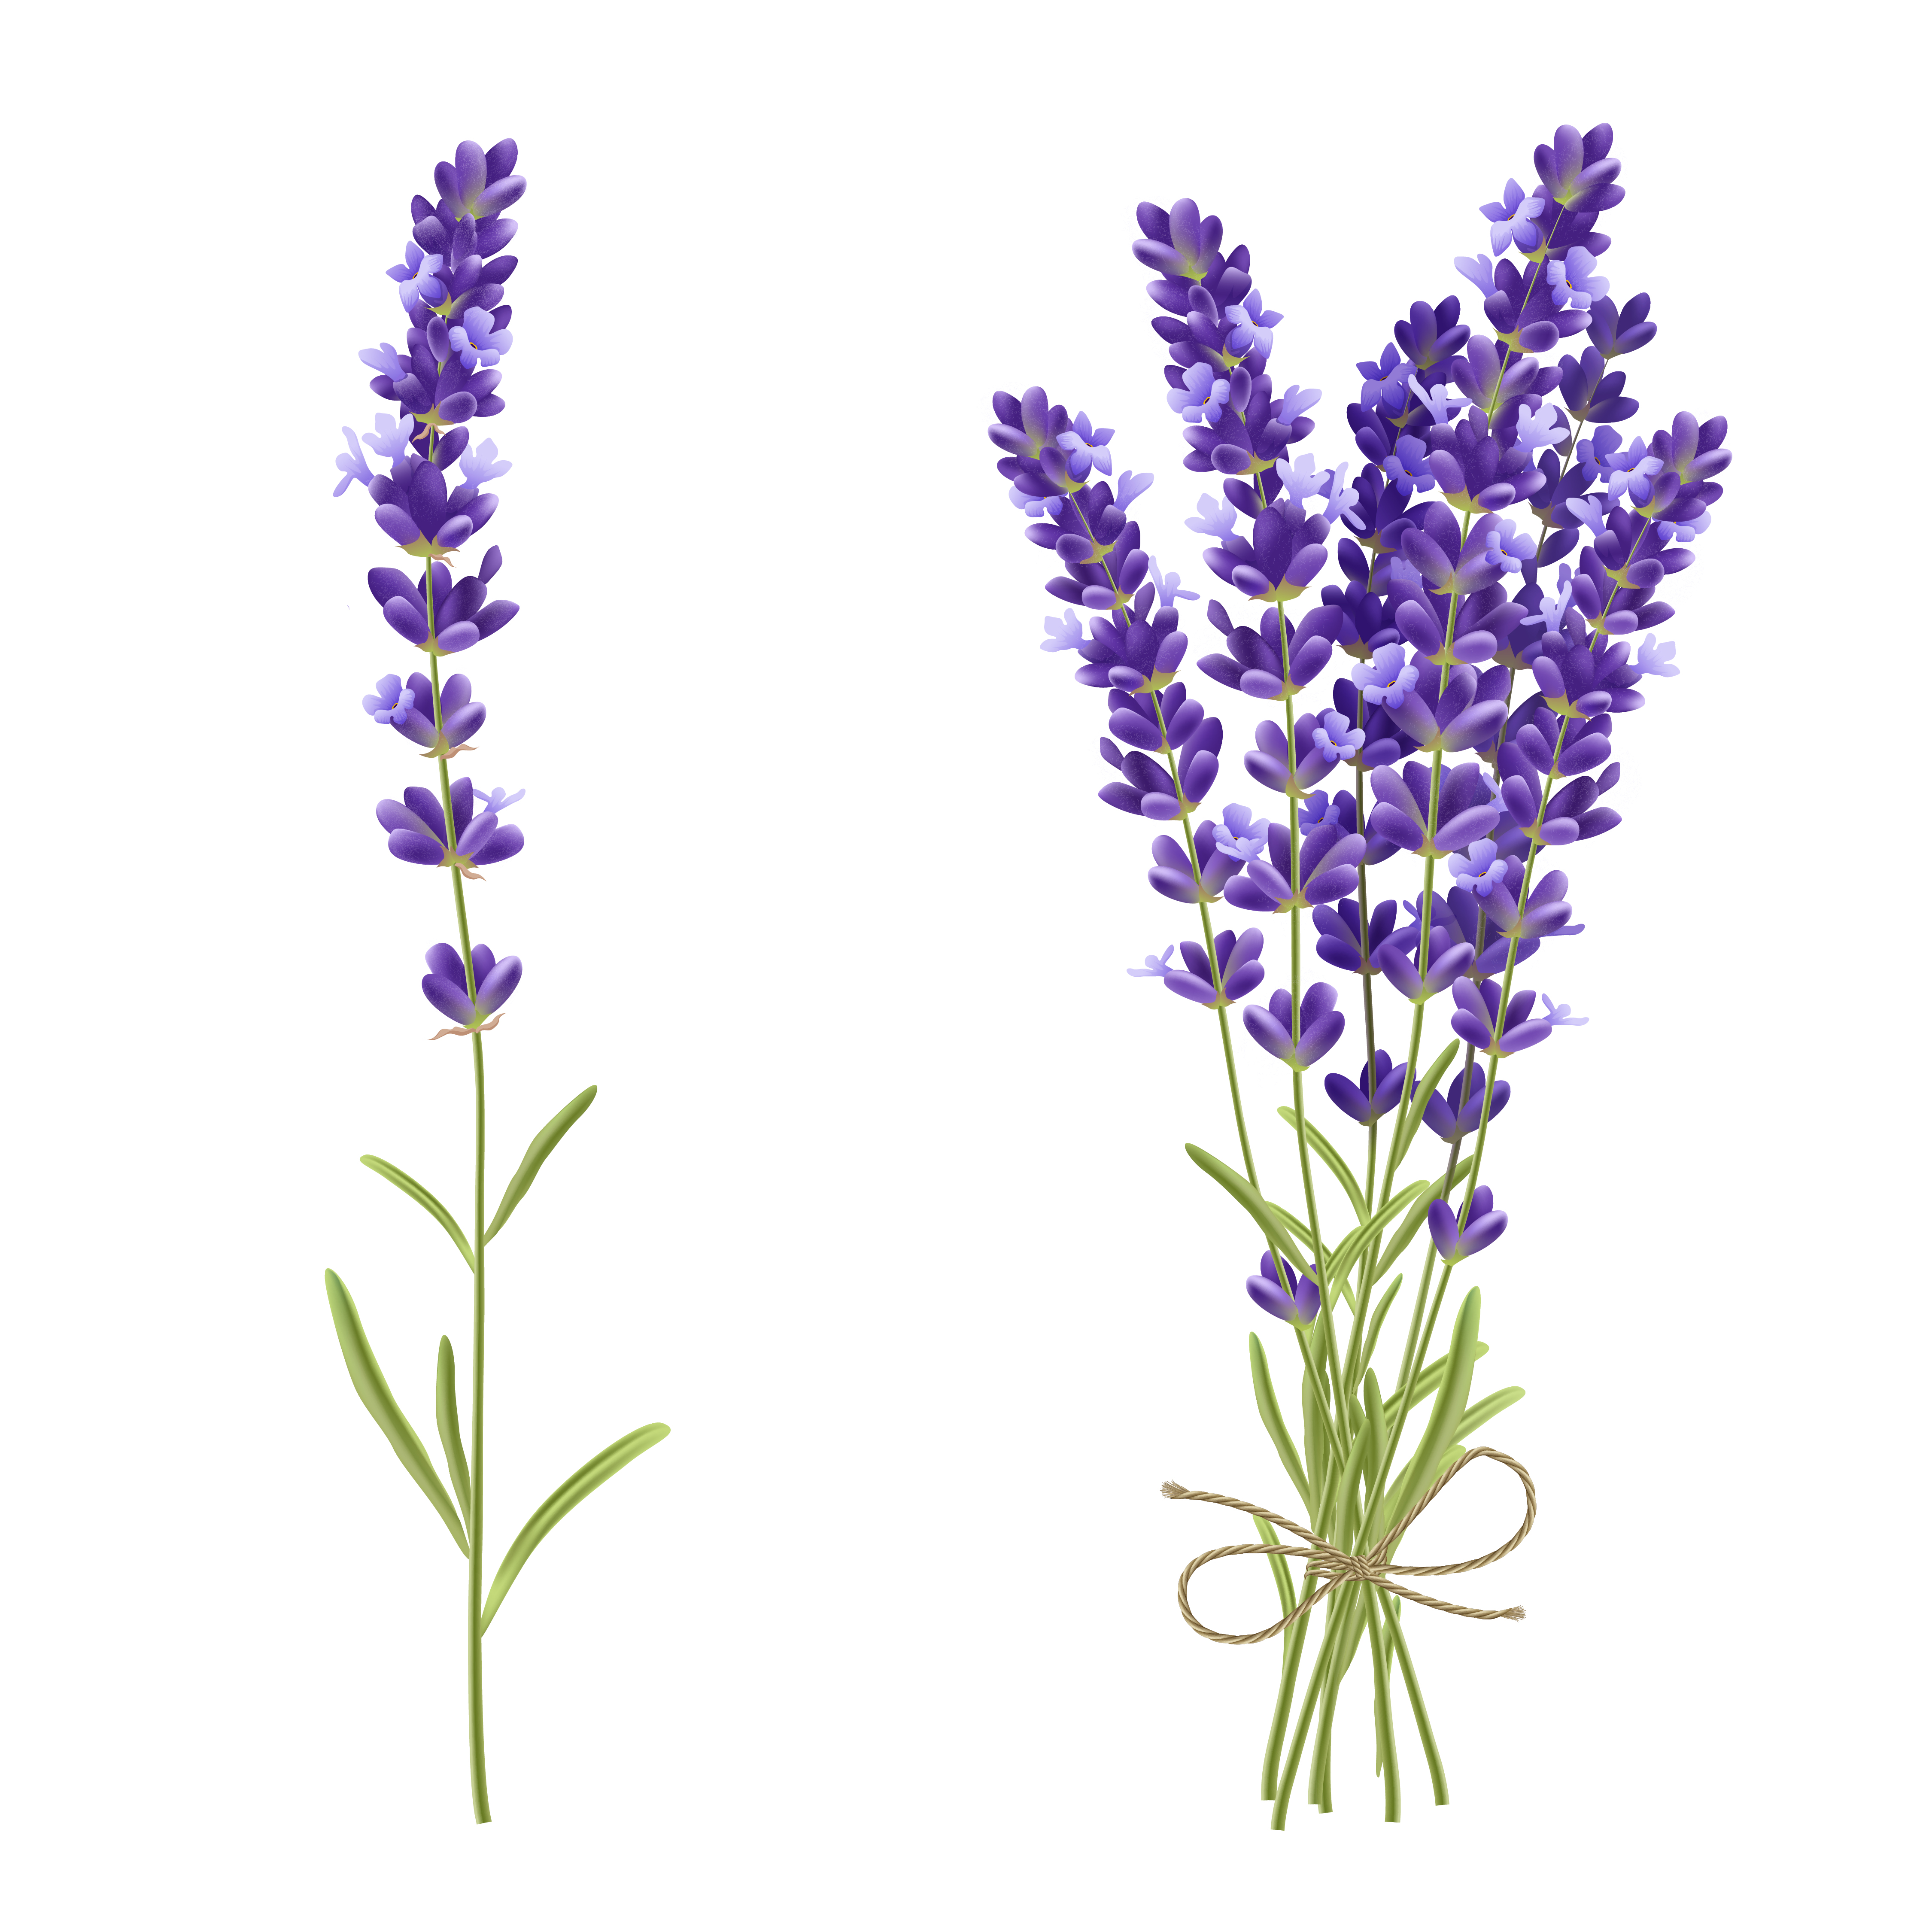 Lavender Cut Flowers Realistic Image - Download Free ...